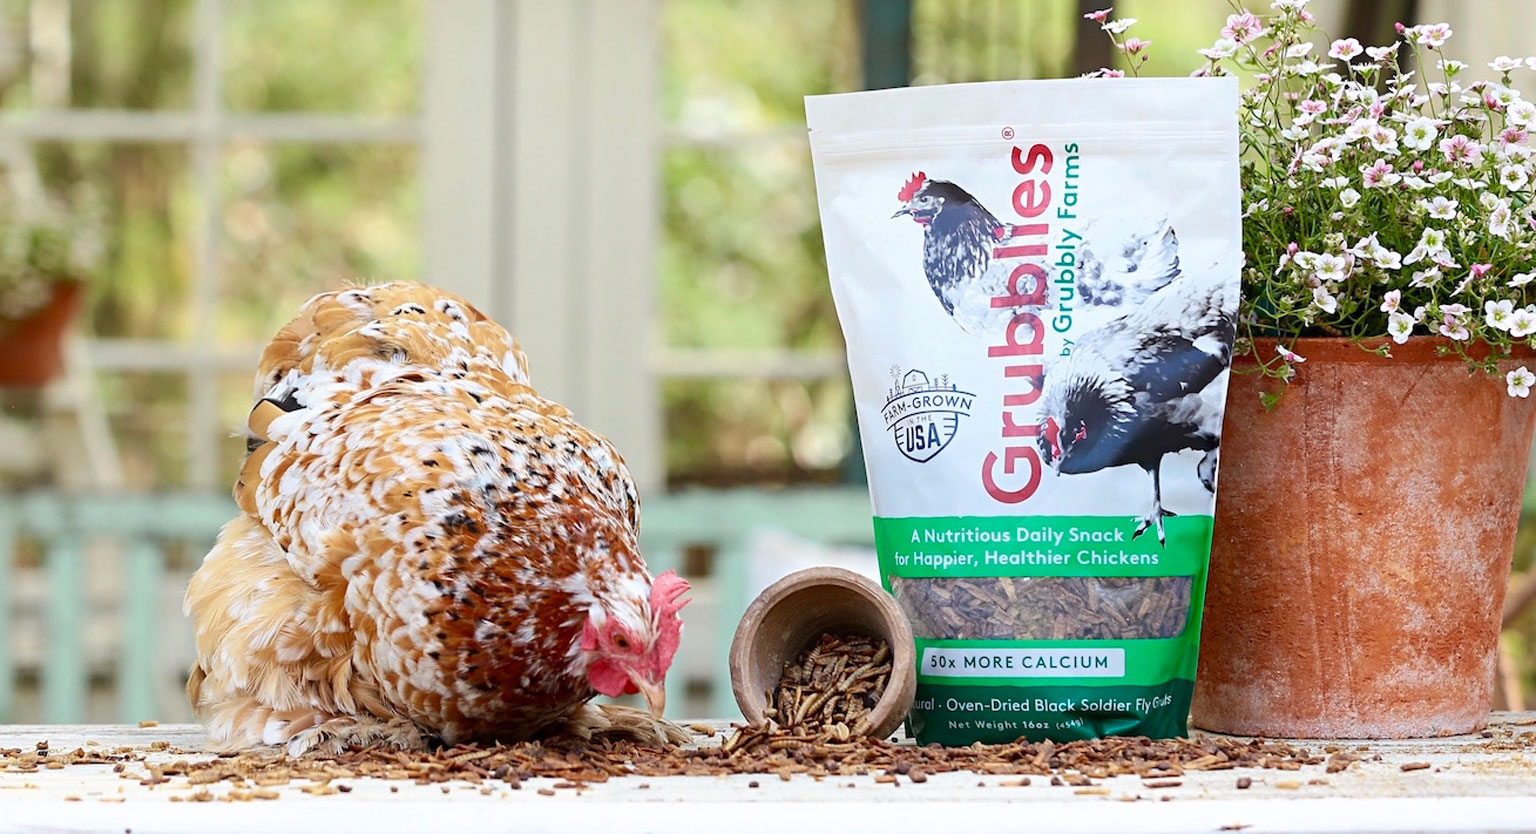 A chicken eating feed next to a packaged retail Grubbly Farms bag of feed.